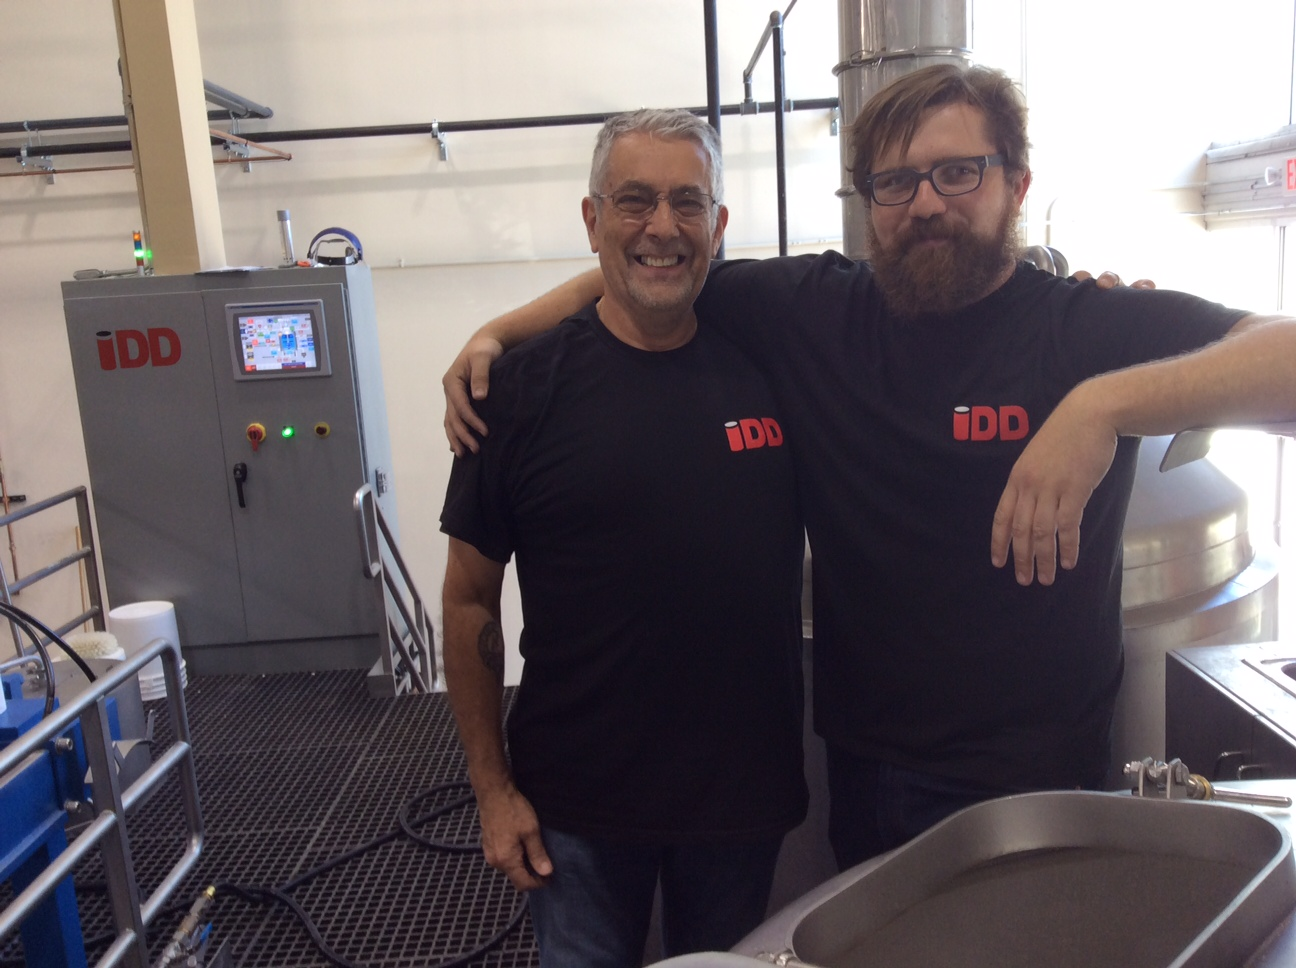 Jeff Gunn, owner of IDD, the company that designed our state of the art equipment,with Matt Ducey, head brewer